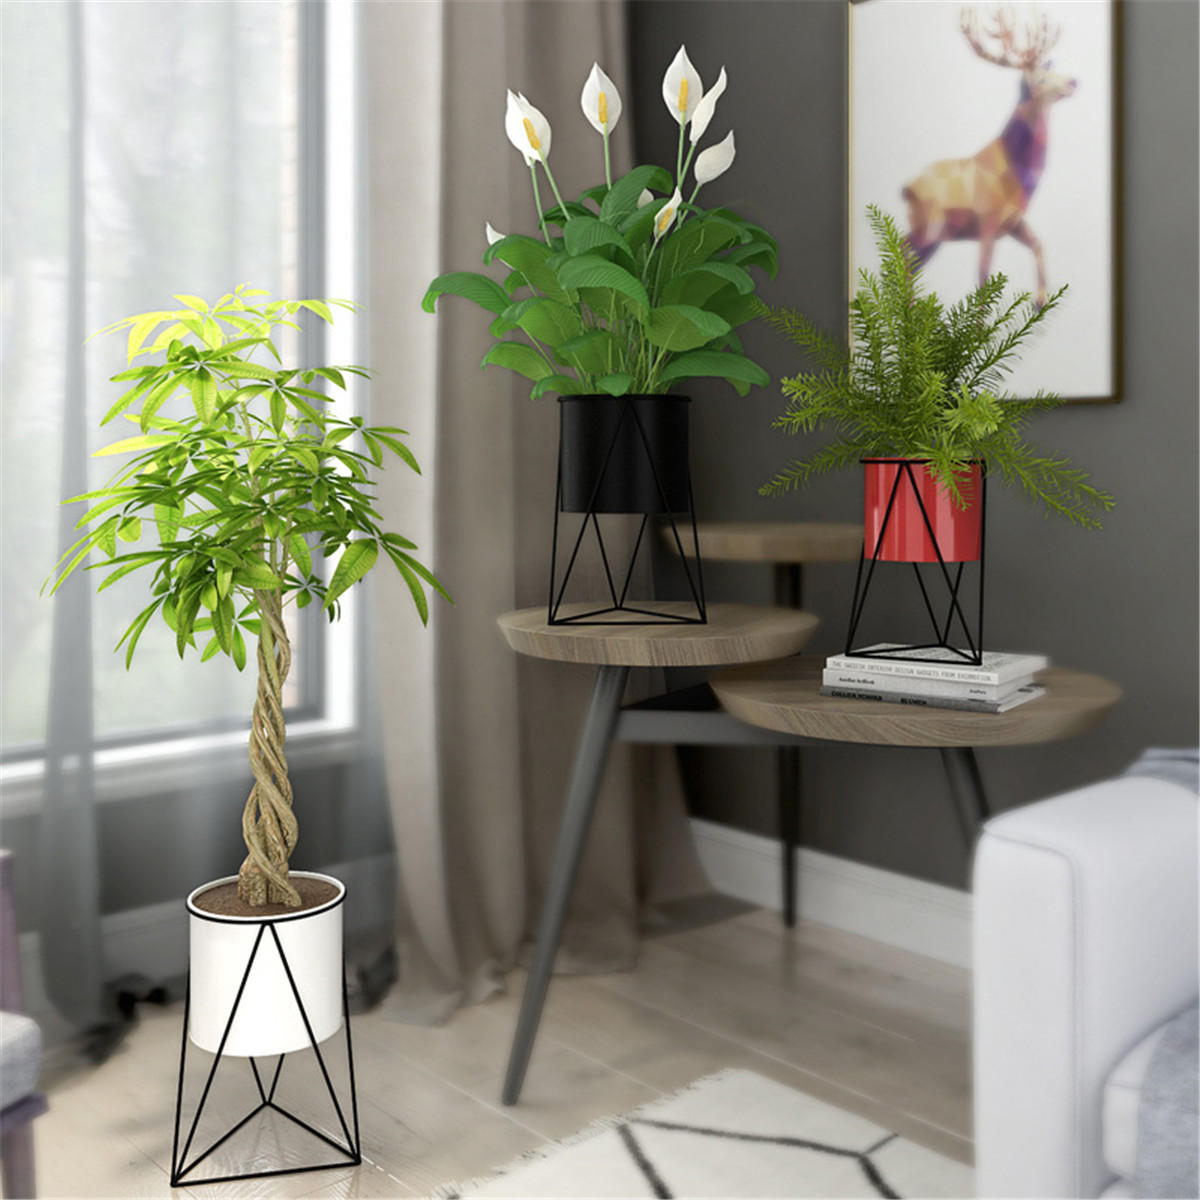 Retro Flower Stand Chic Indoor Garden Metal Plant Holder Display Planter Vase - 5